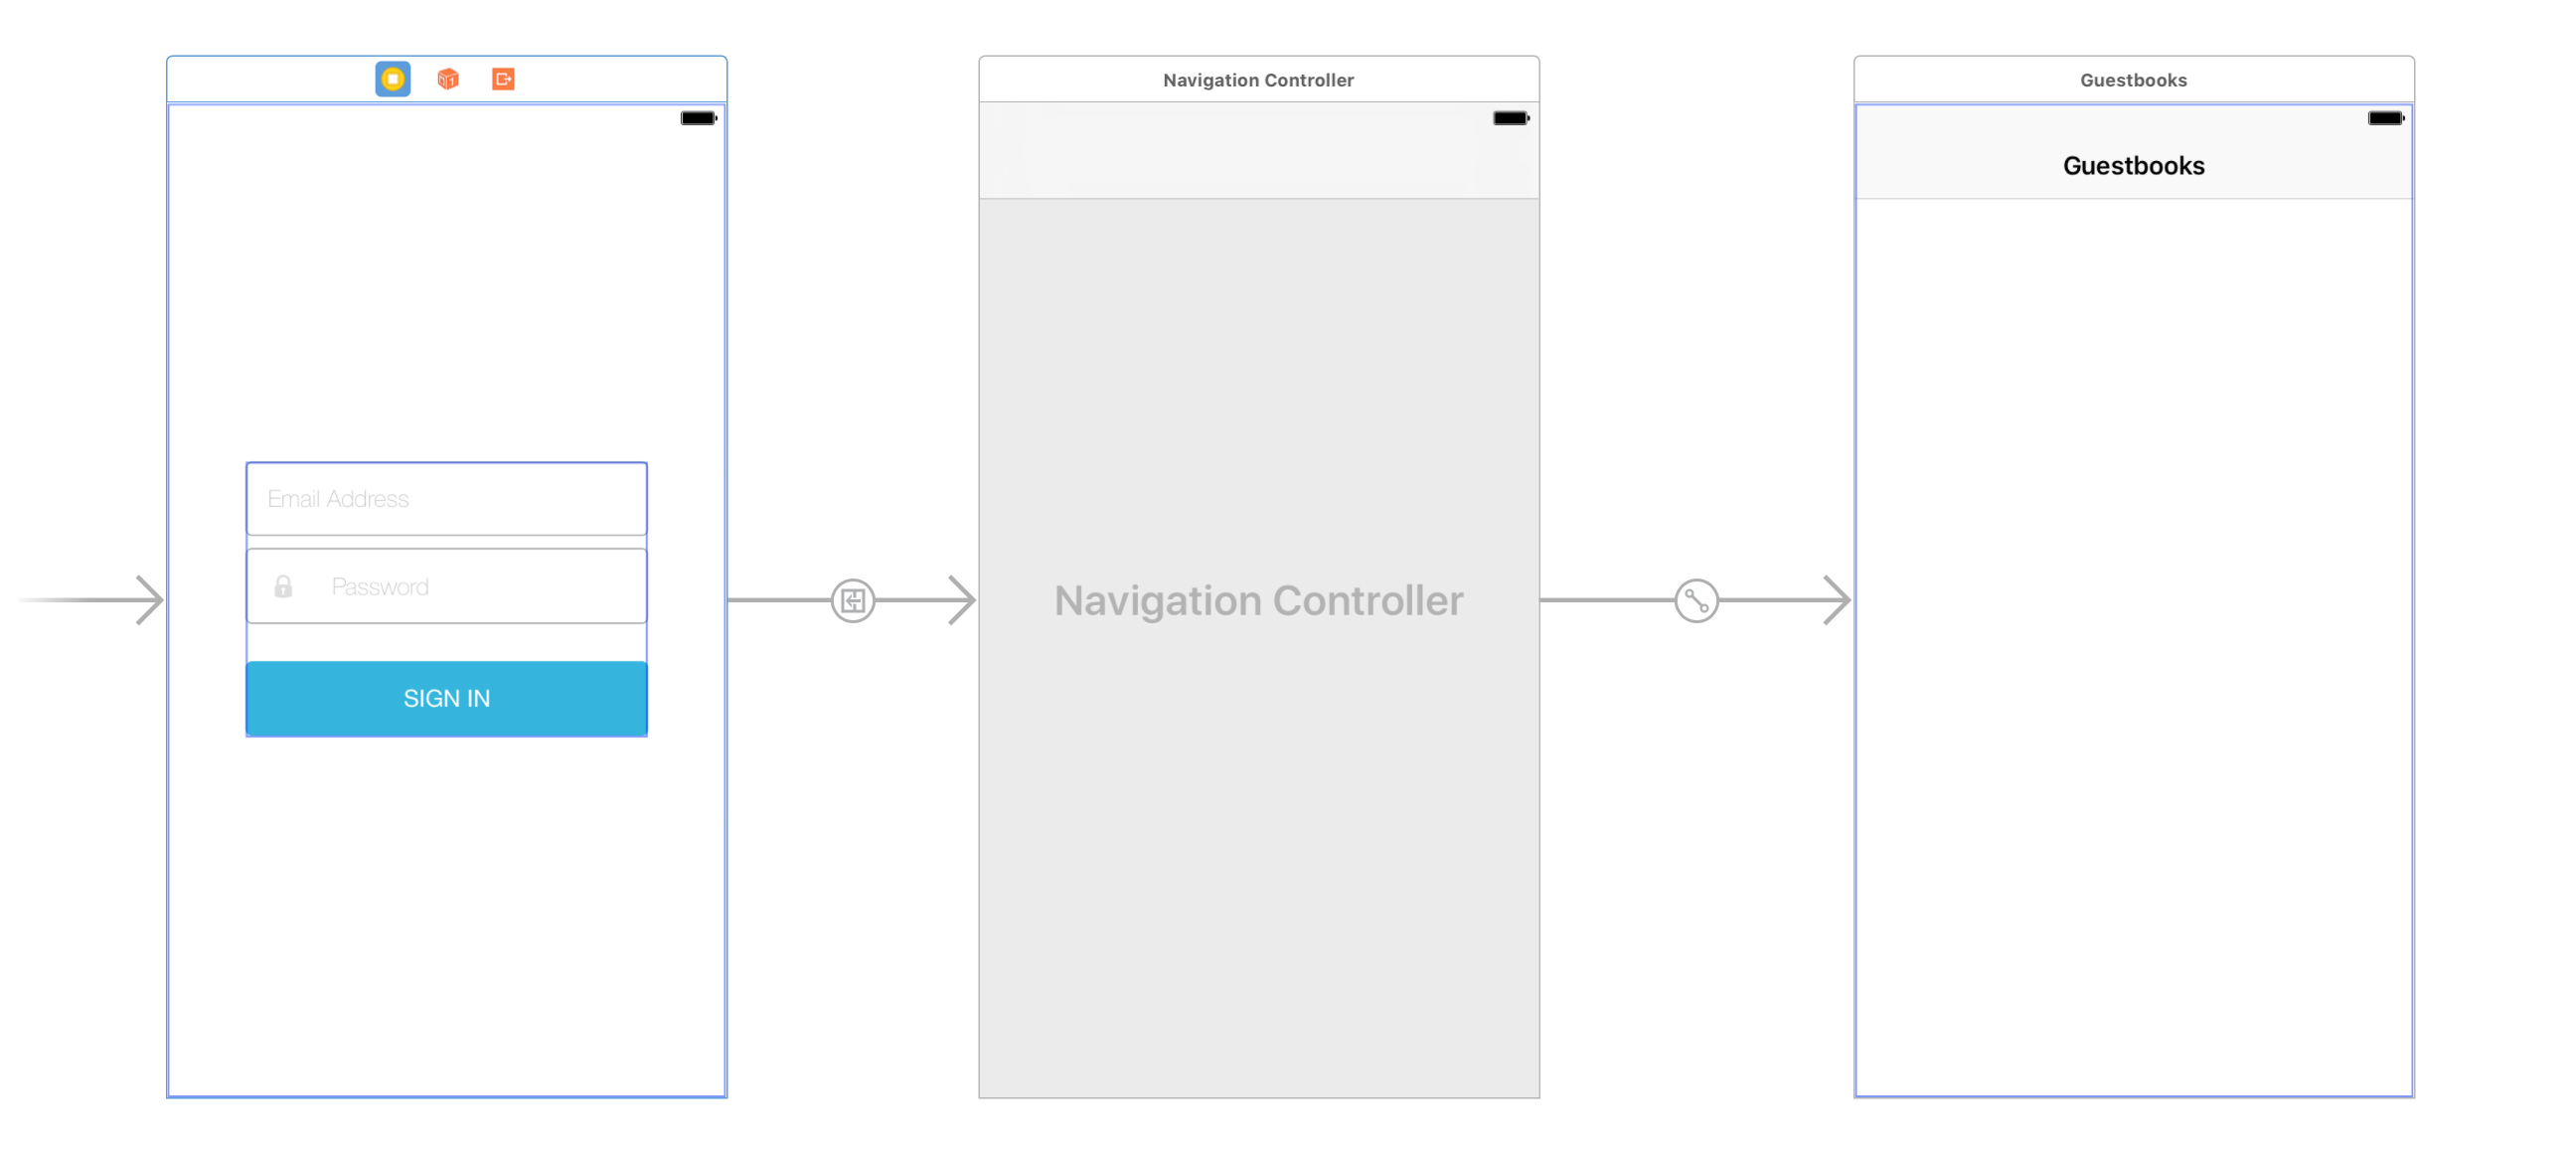 Figure 6: A segue now exists from the login scene to the navigation controller.